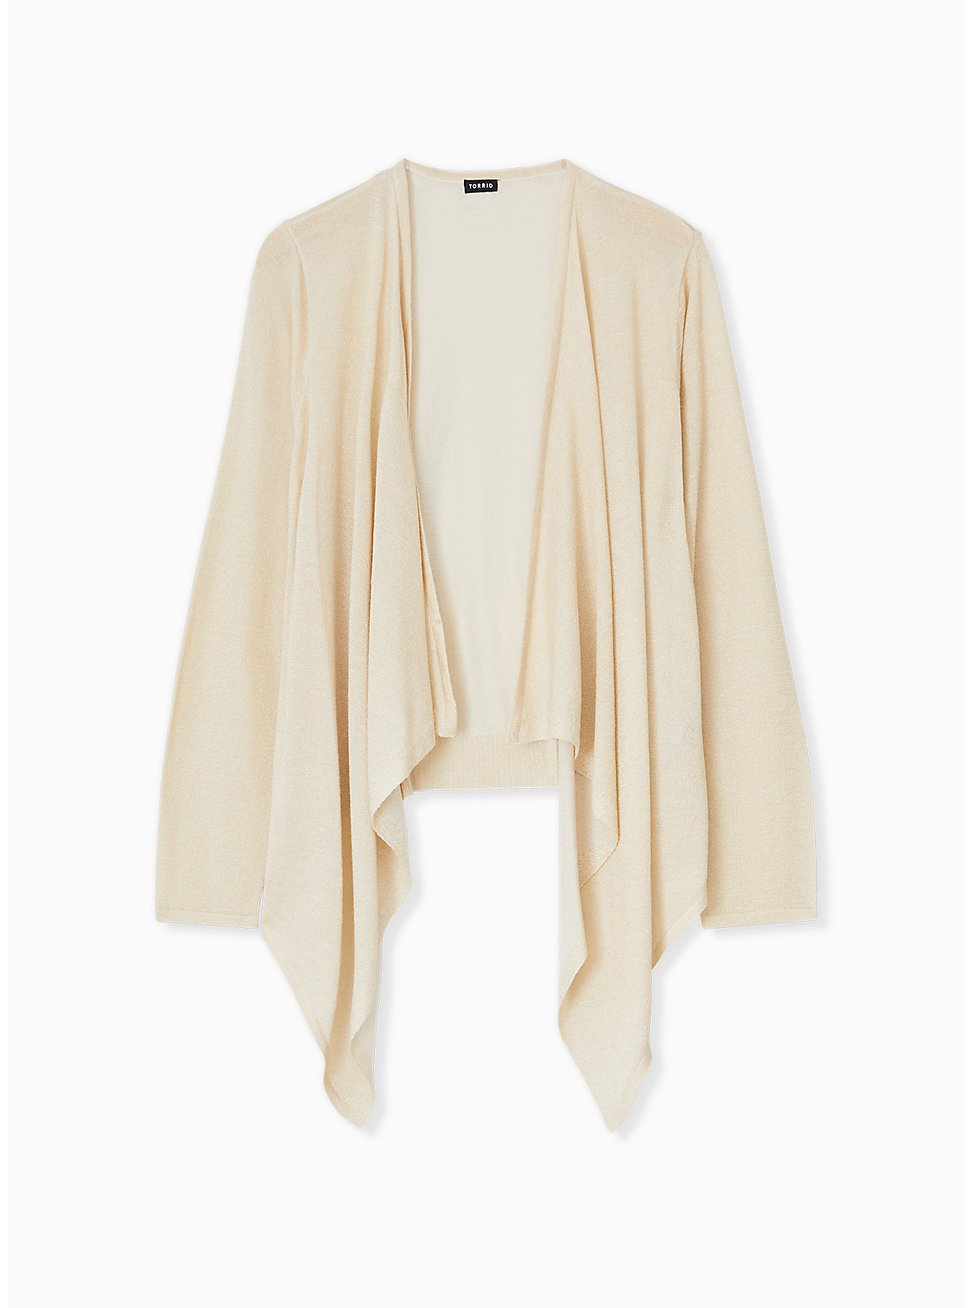 Ivory Shimmer Open Stitch Drape Front Cardigan, TAN/BEIGE, hi-res